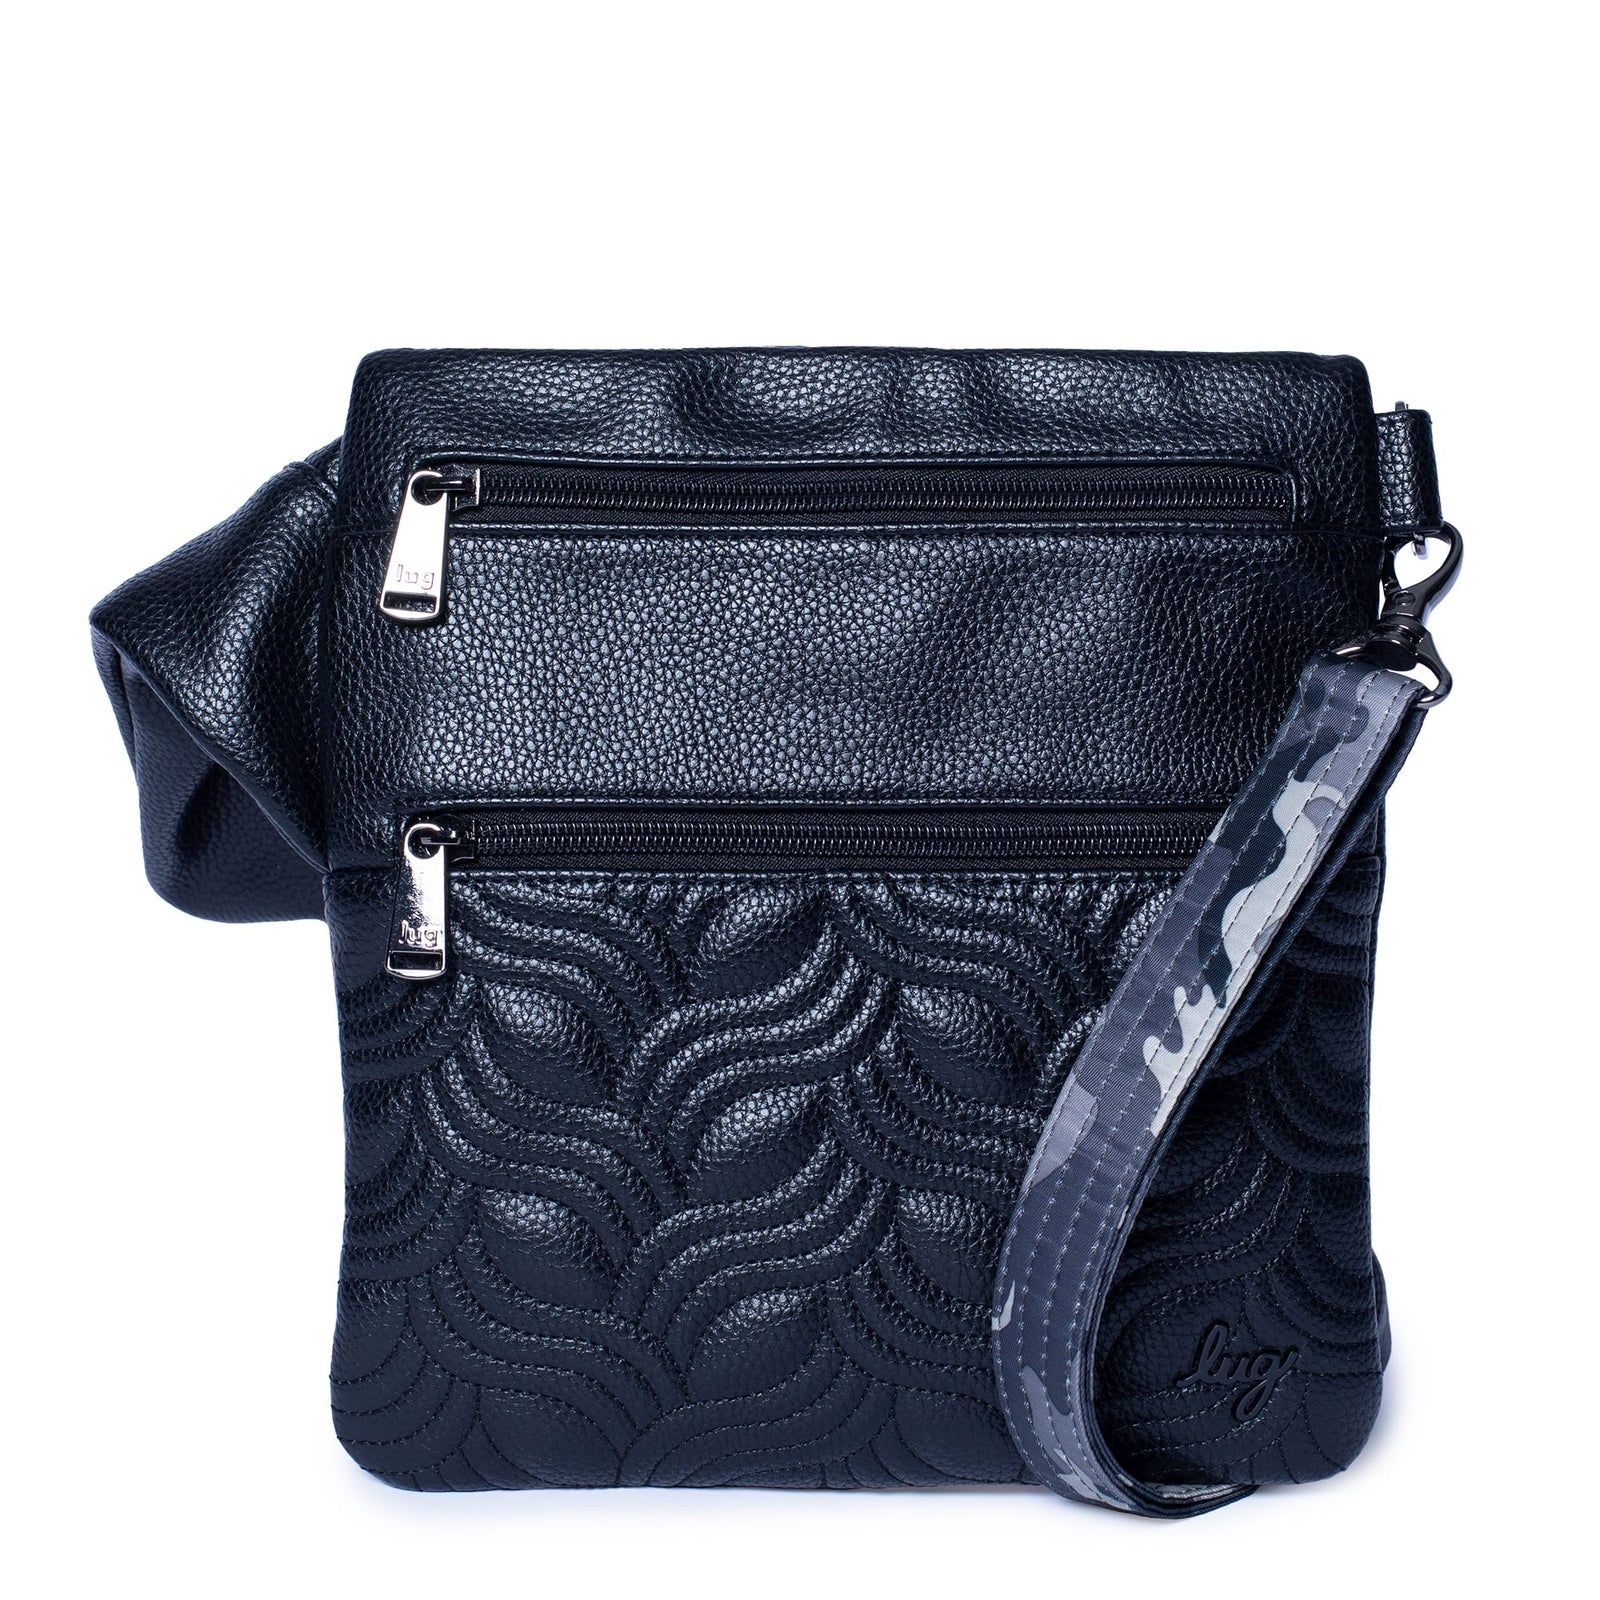 Black and White Floral and Plaid Pearl Crossbody  Purse